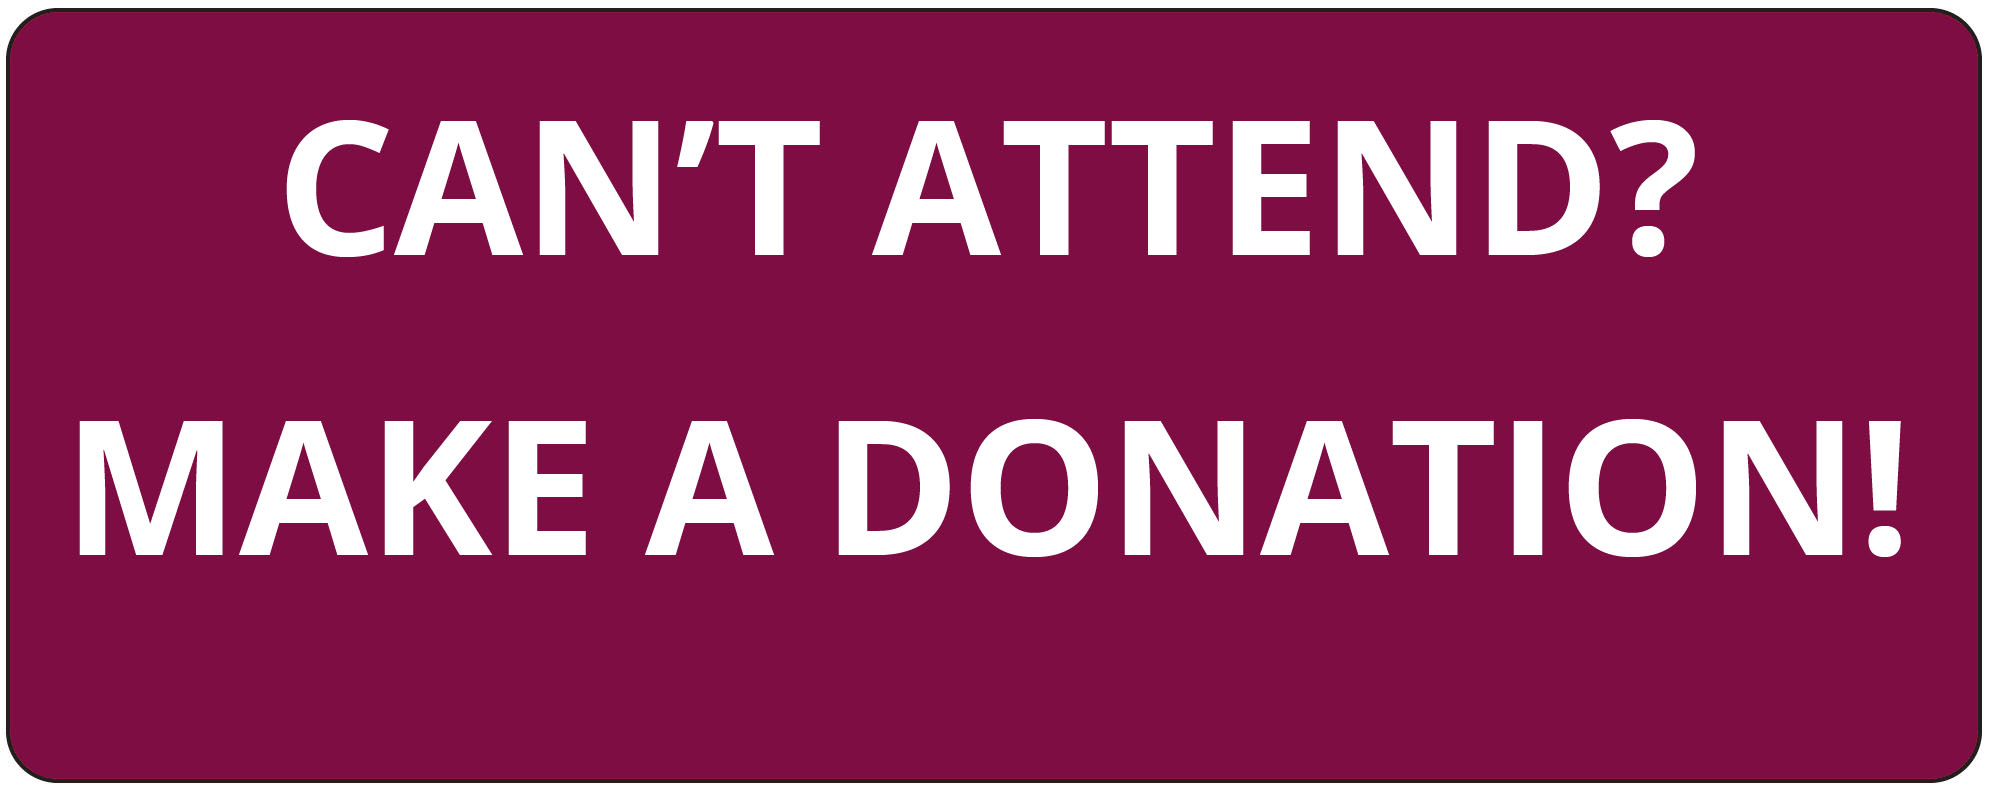 Can't Attend? Donate!